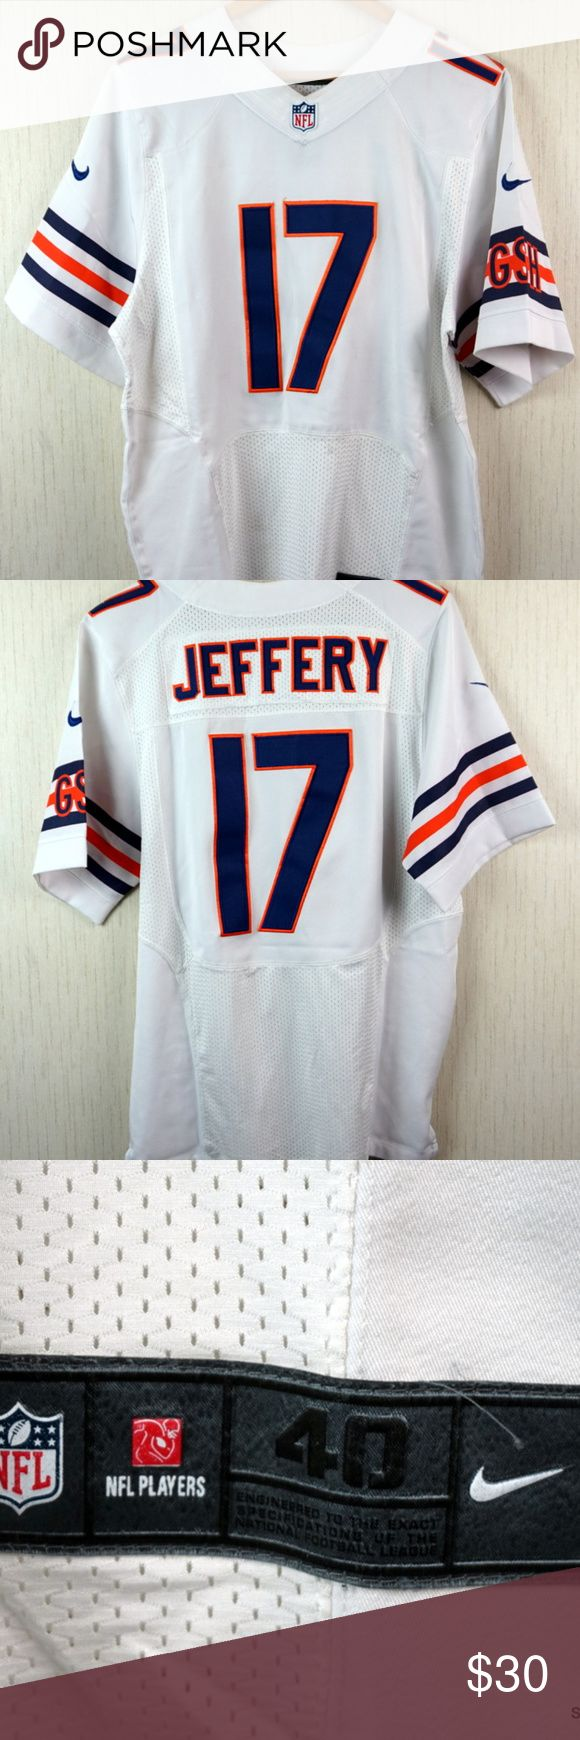 "Chicago Bears Alshon Jeffery #17 Nike NFL Jersey Chicago Bears Alshon Jeffery #17 Sewn Nike NFL On Field Jersey Men's Size 40  Brand:       Nike Color:        White Size:         Men's Size 40 Material:   Polyester  Detailed Measurements: (Front Side of Garment has been measured laying flat on a table)  Sleeves: 12 1/4"" inches Shoulder to Shoulder: 18 1/2"" inches Chest: 22"" inches Length: 31 1/4"" inches Nike Shirts"